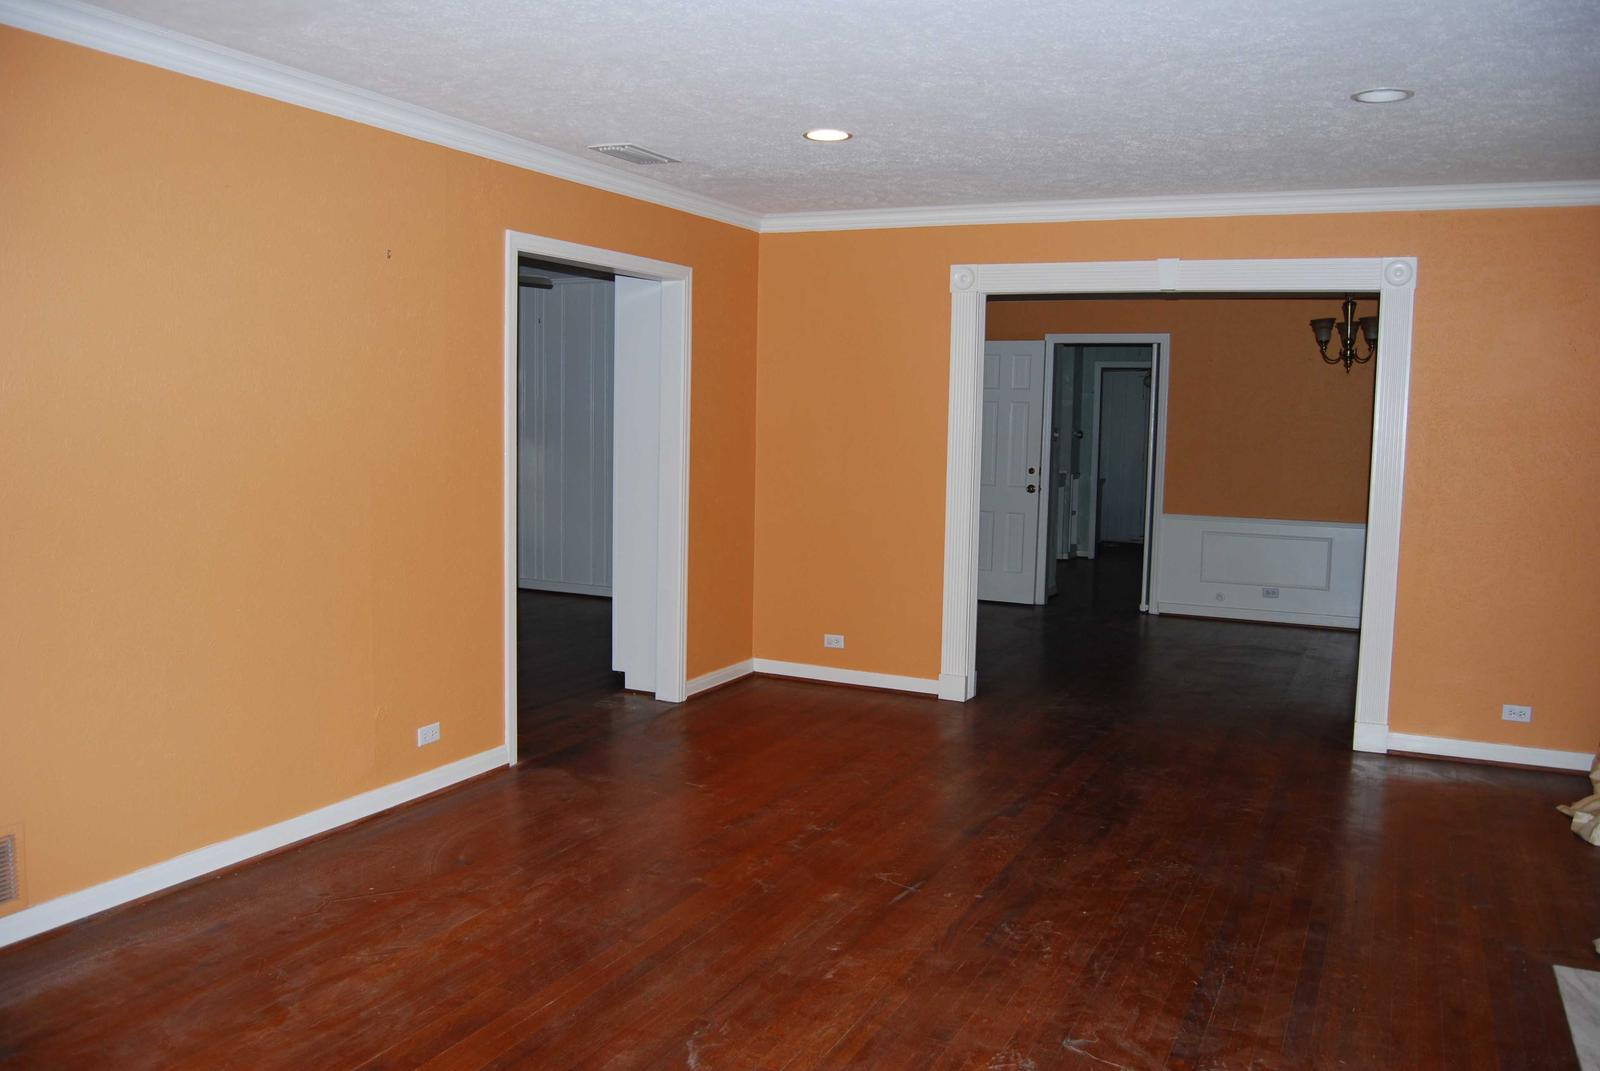 Look at pics and help suggest wall color hardwood